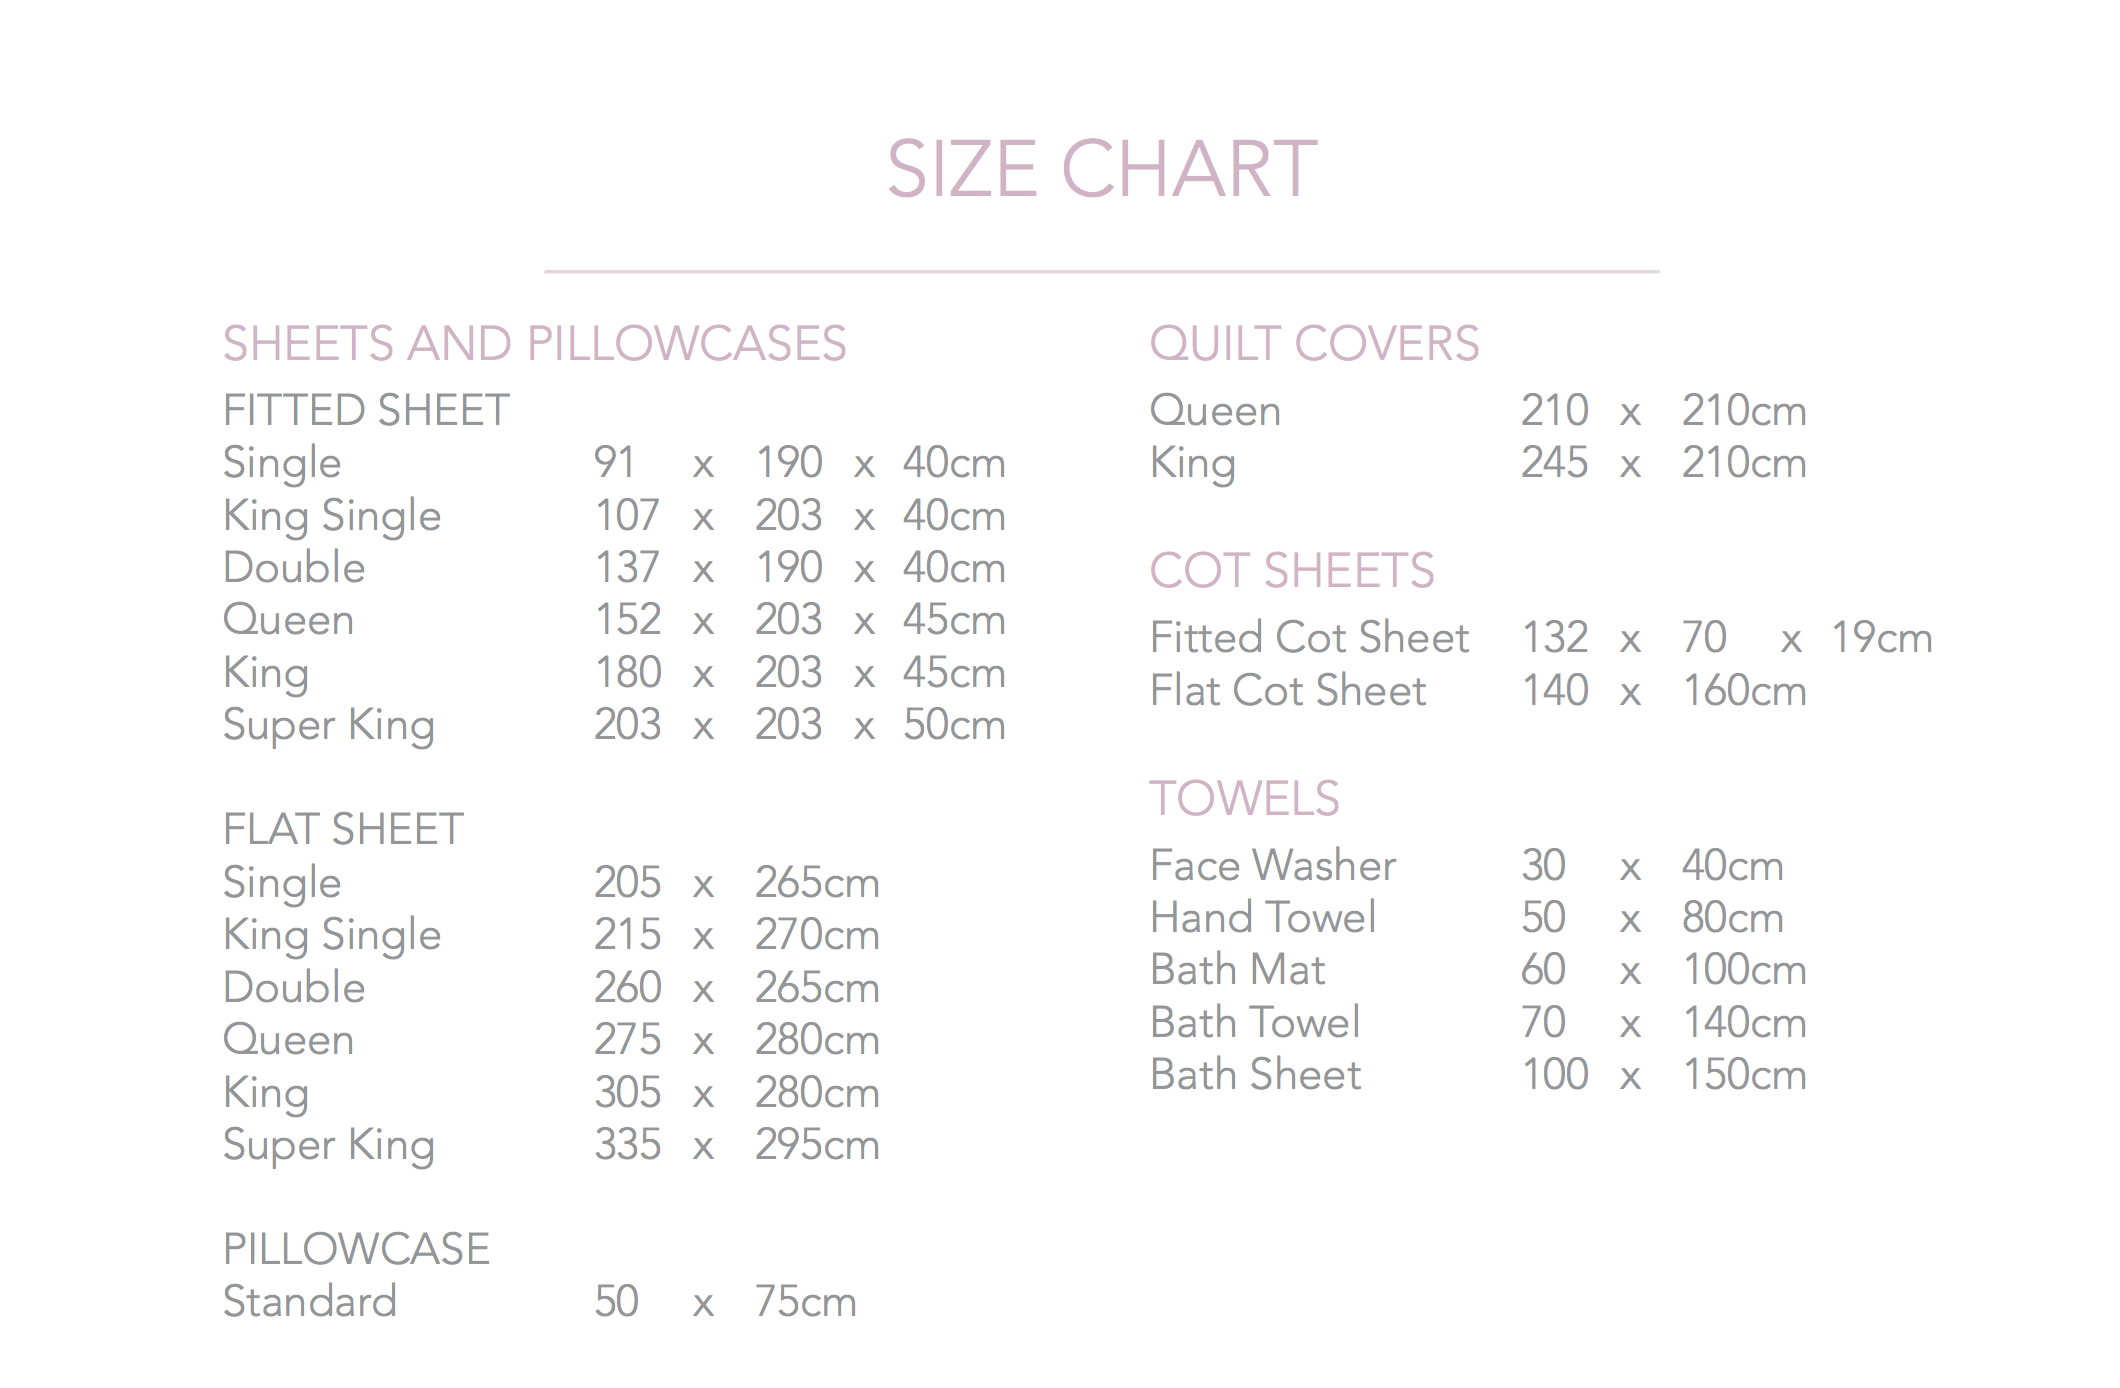 Where can you get a chart listing all sizes of flat sheets?